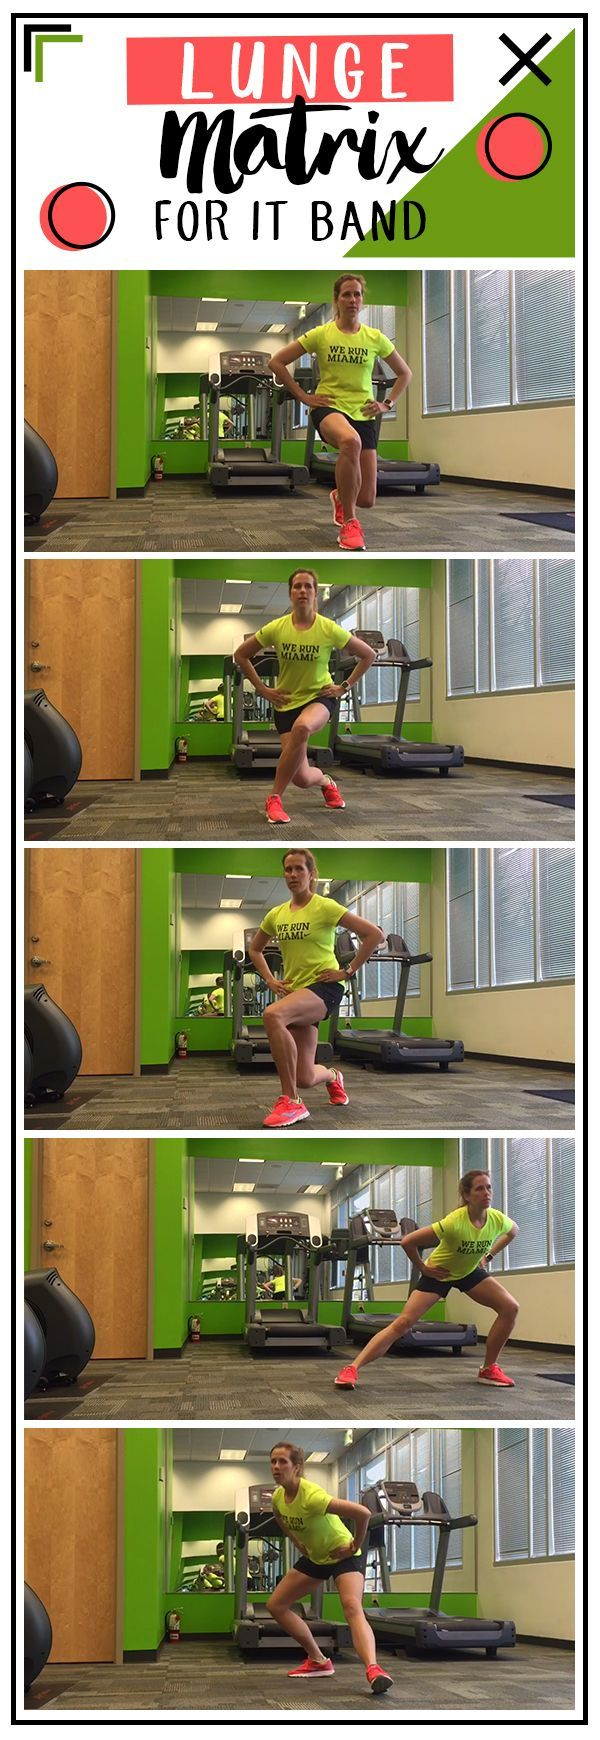 IT Band Recovery Exercises for Runners that actually work and keep you running injury free long term